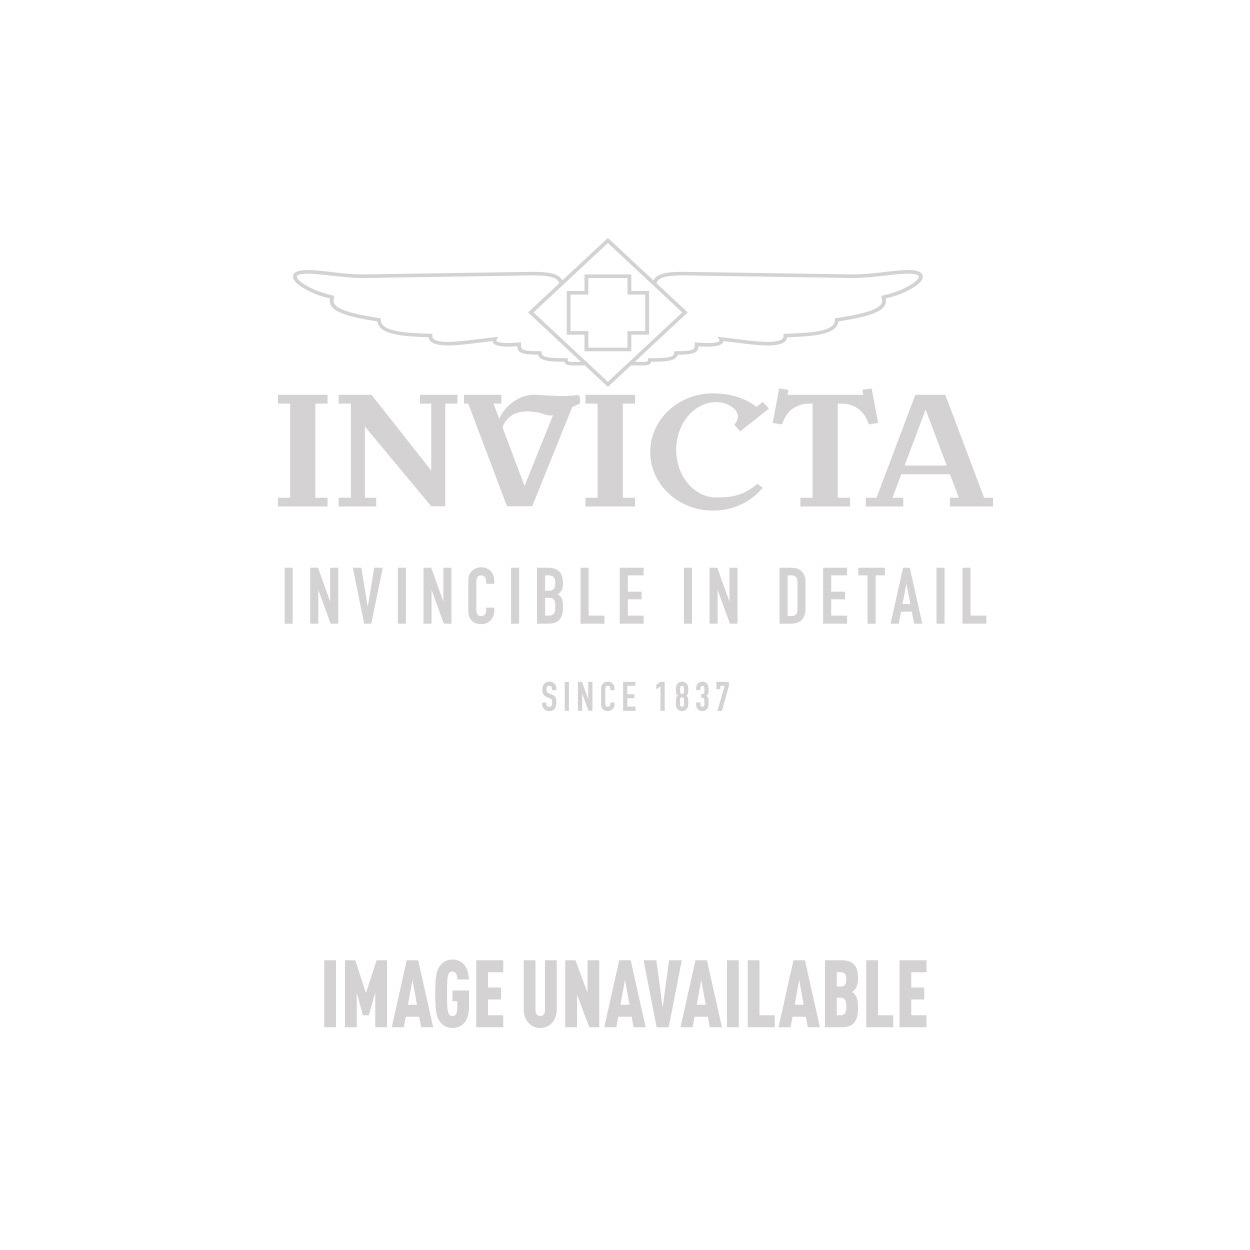 Invicta S1 Rally Quartz Watch - Black, Stainless Steel case with Black tone Polyurethane band - Model 1849